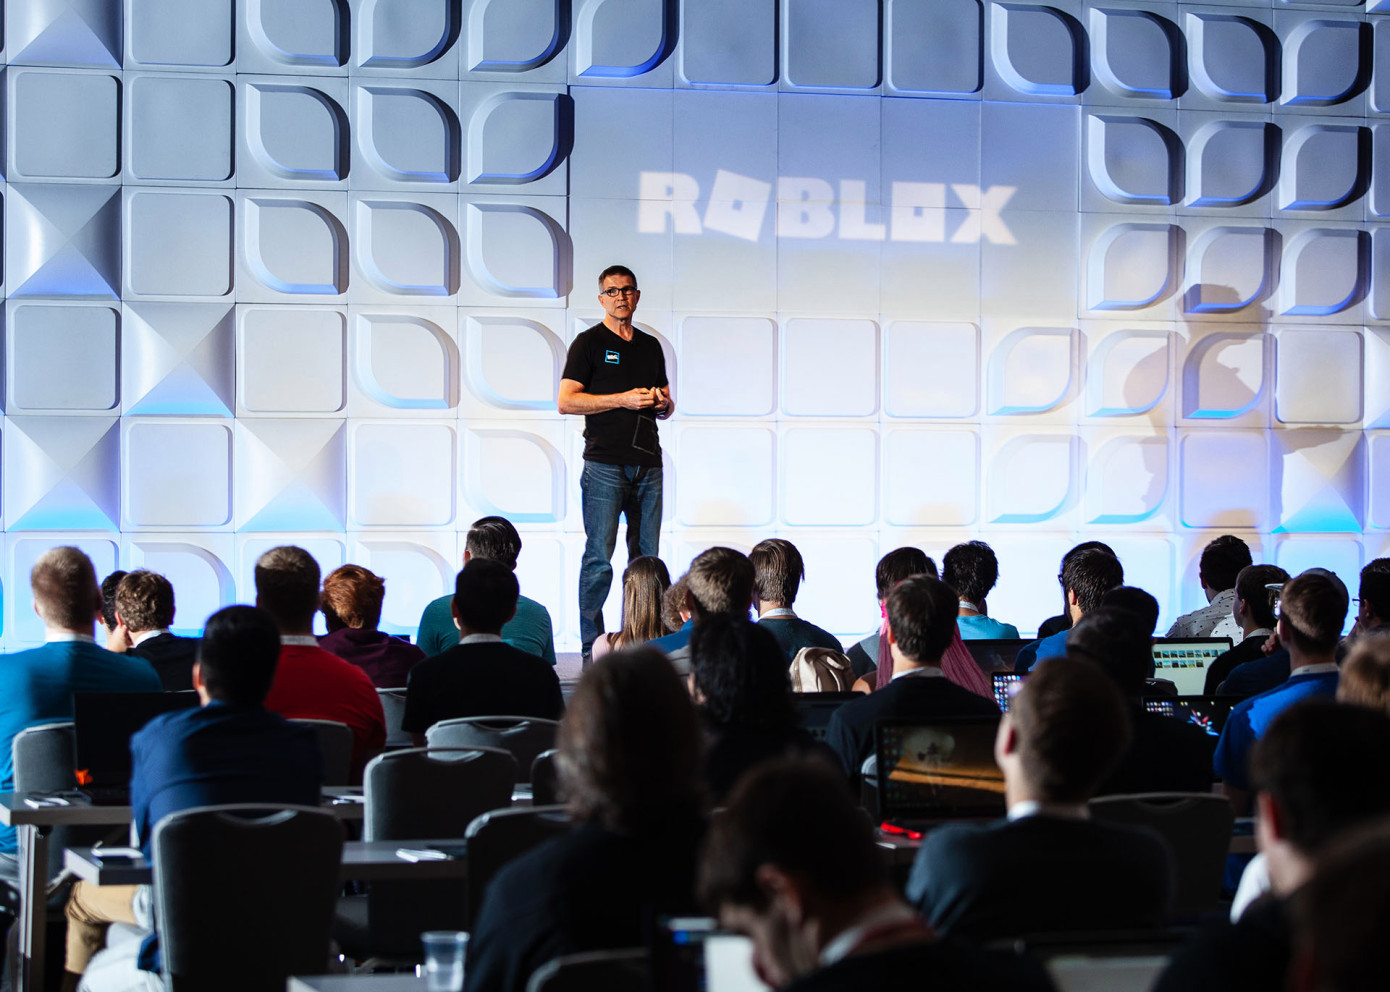 Roblox hits 100 million monthly active users - Gadget Freeks